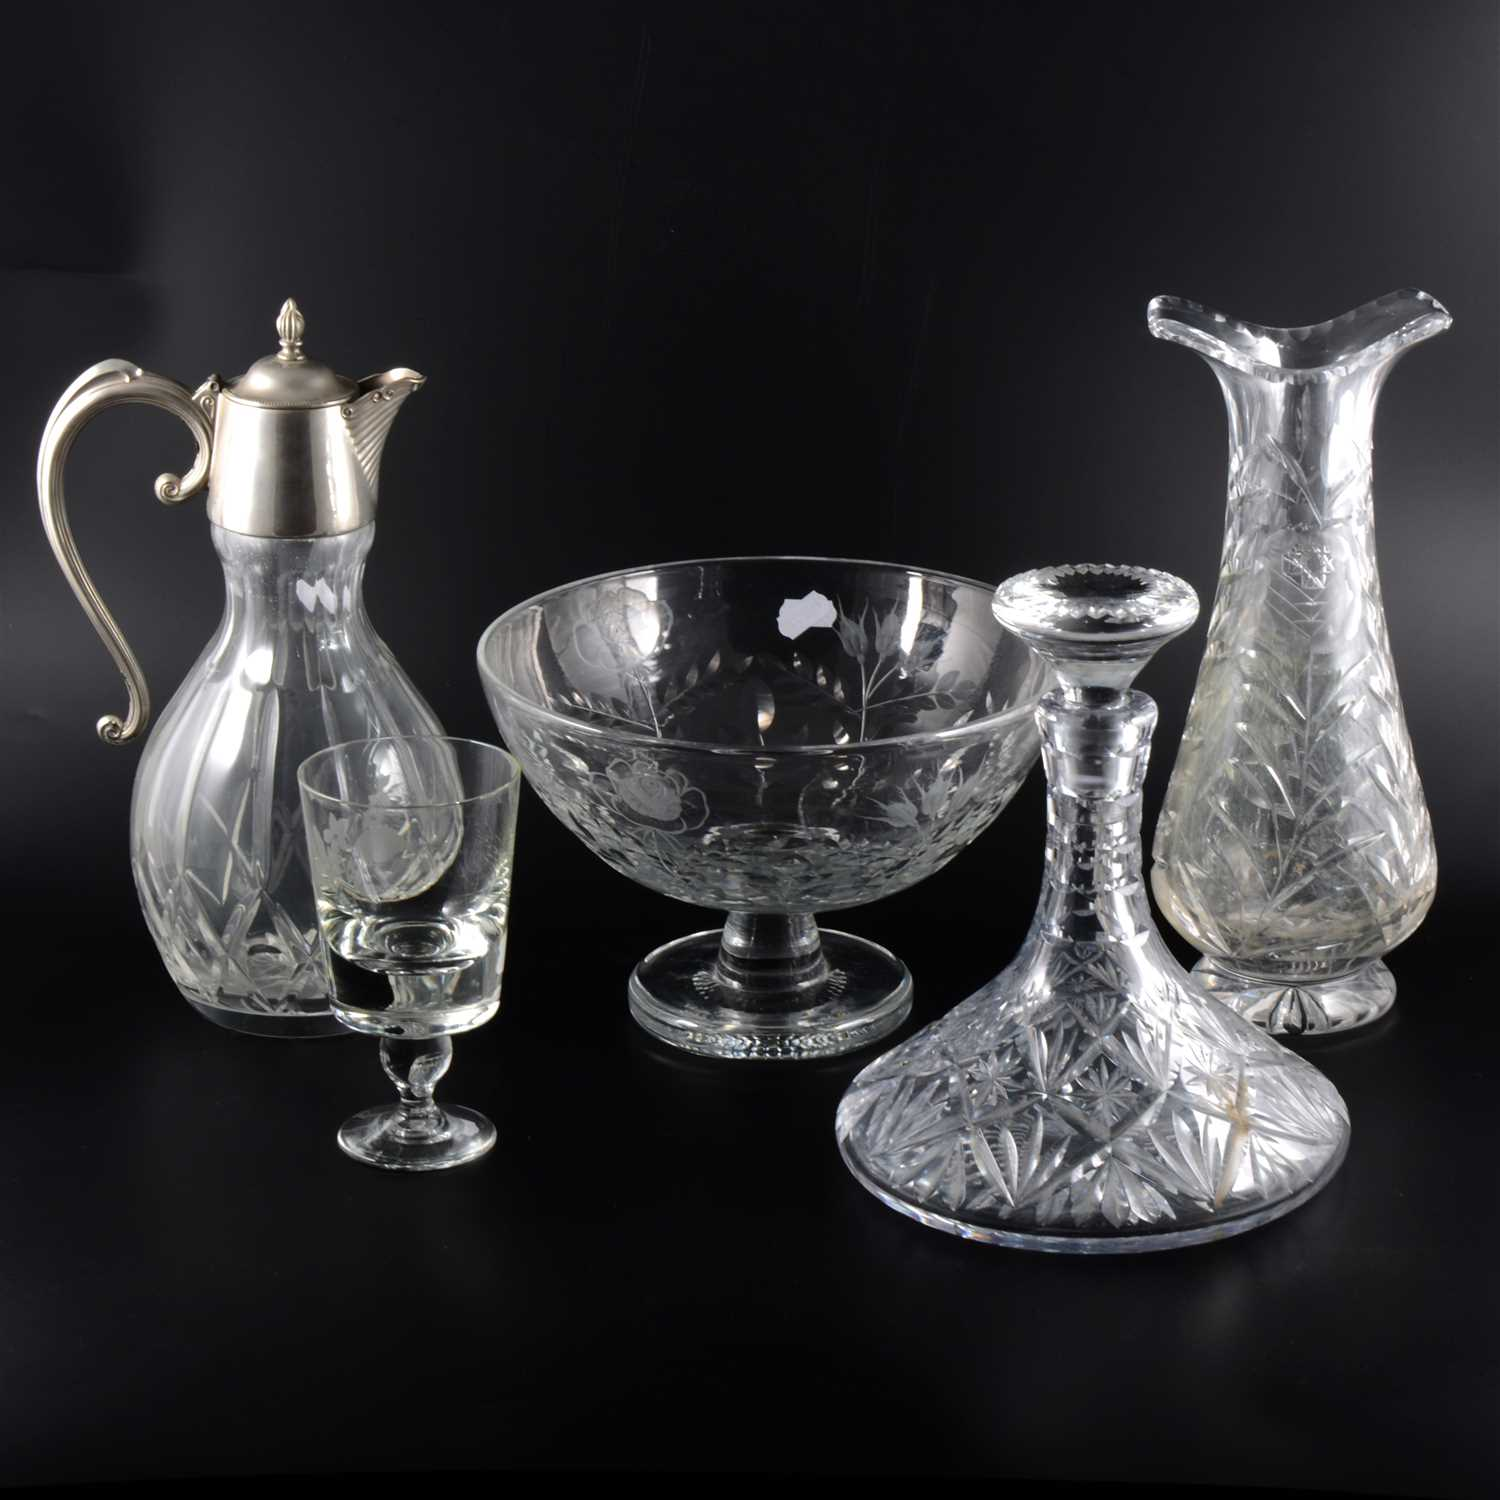 Lot 12-A quantity of modern crystal glassware including decanters and a centre bowl.